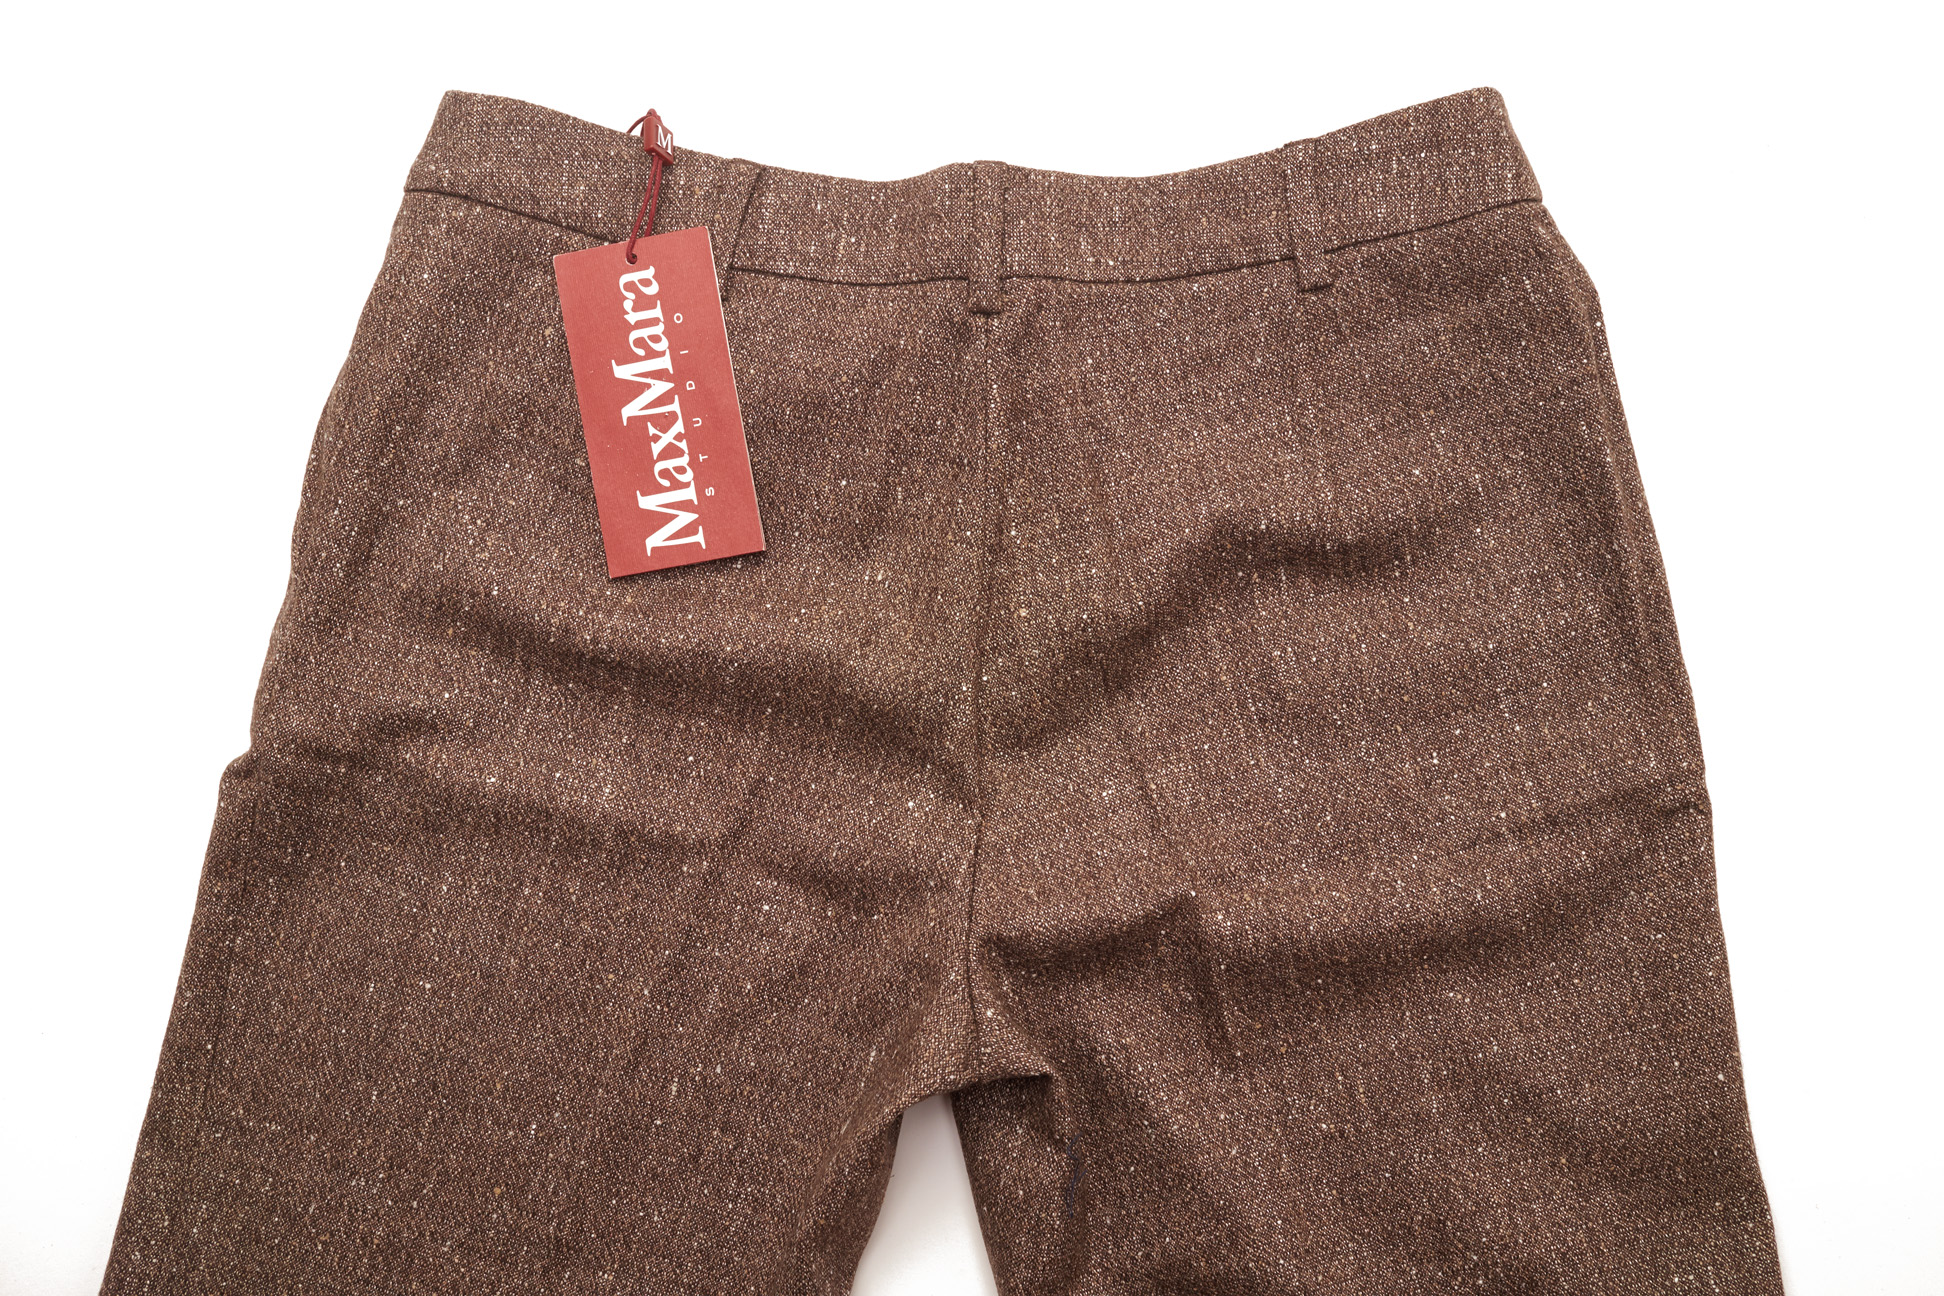 A PAIR OF MAXMARA WOOL TROUSERS - Image 2 of 2